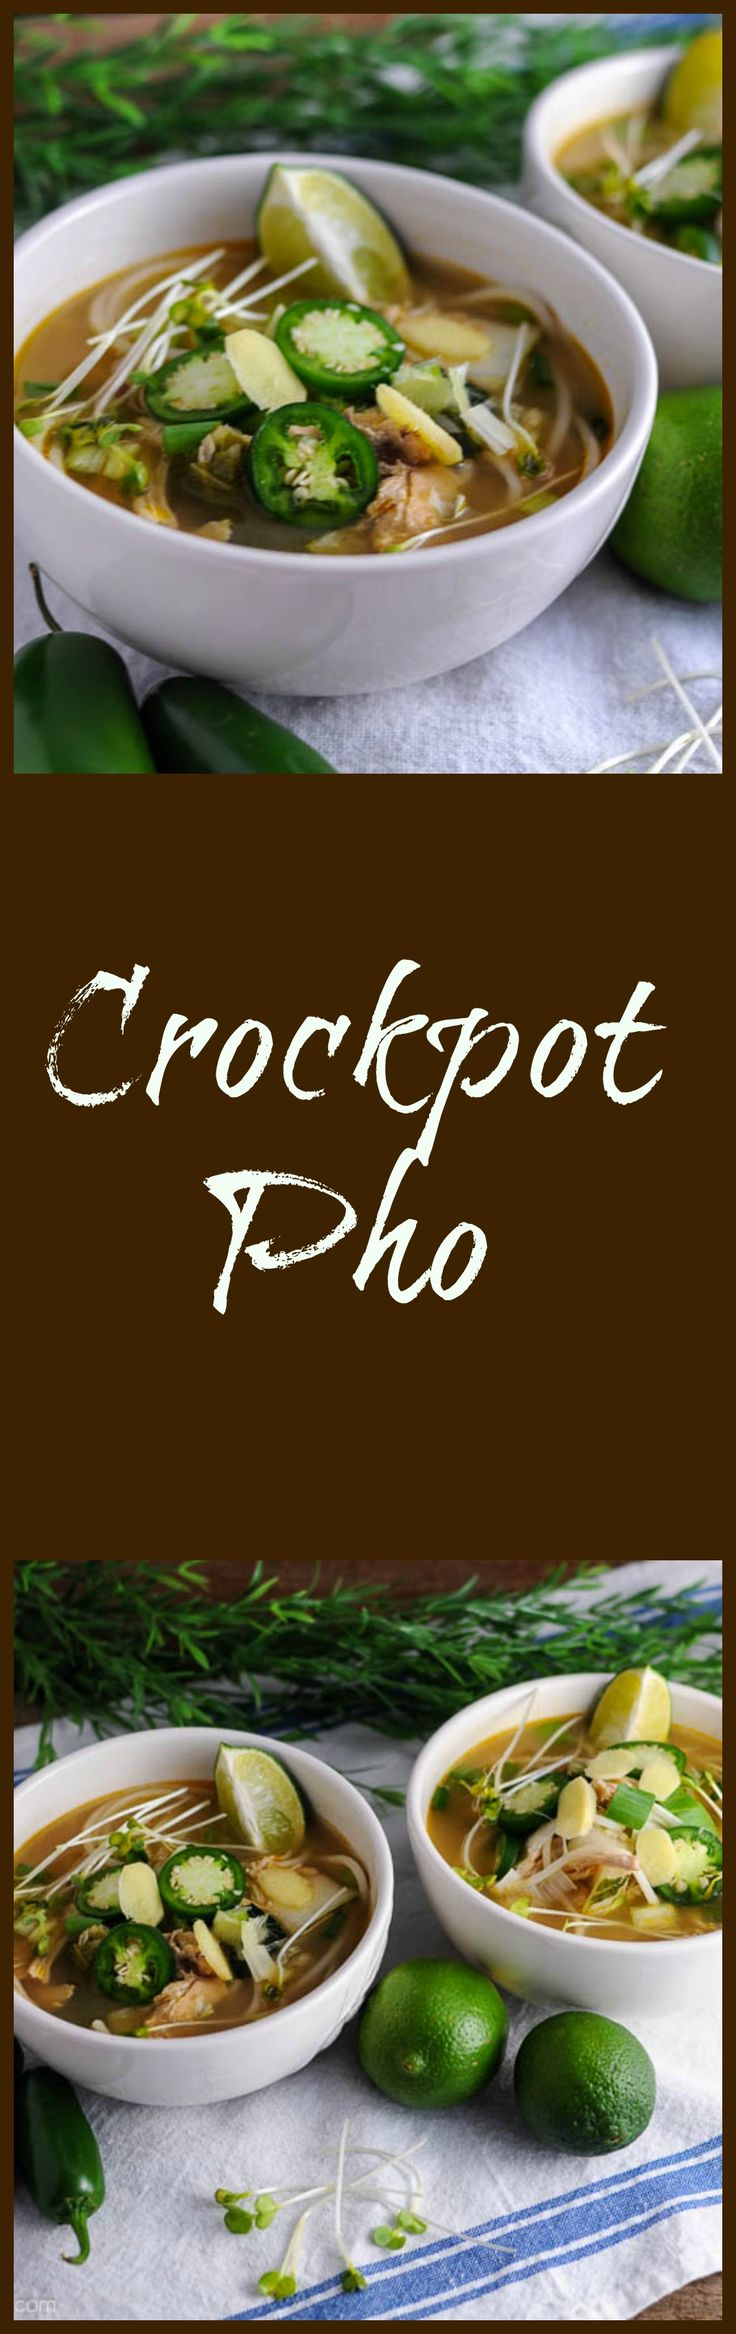 Crockpot Pho with chicken, easy recipe for a warm weeknight meal!  #crockpot #slowcooker #chickens #soup